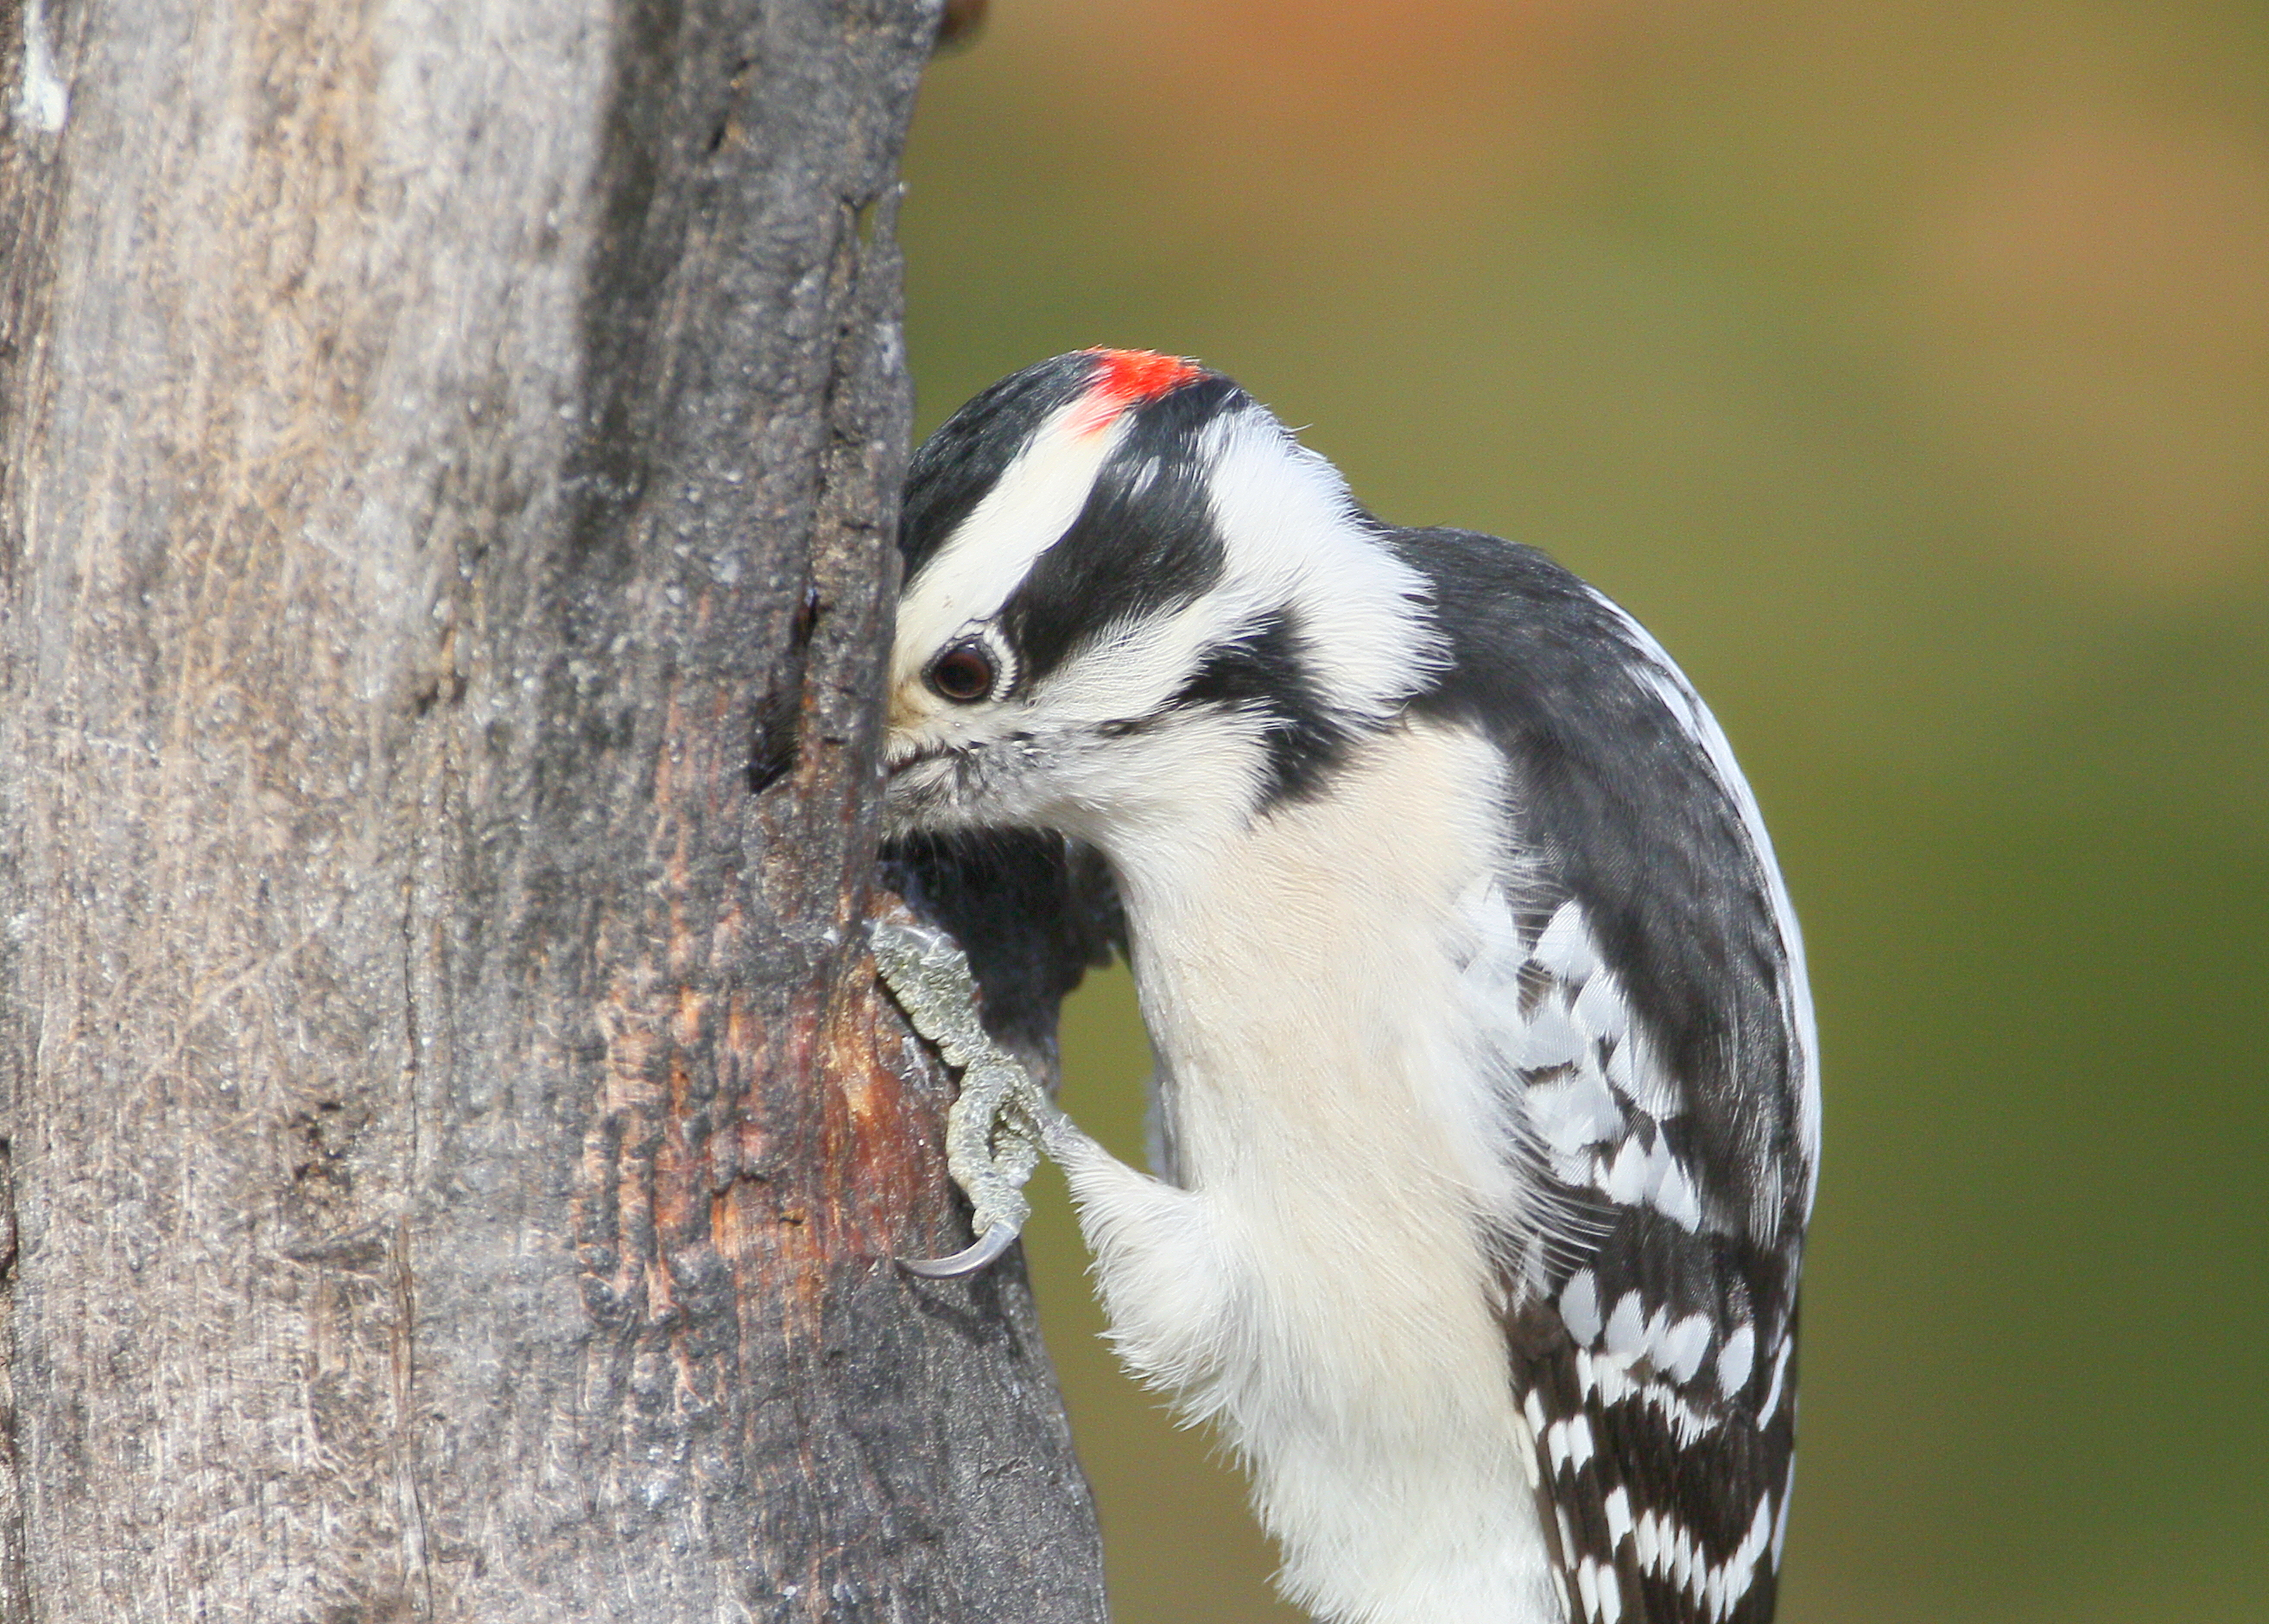 Downy Woodpecker Drumming The Downy Woodpecker is The